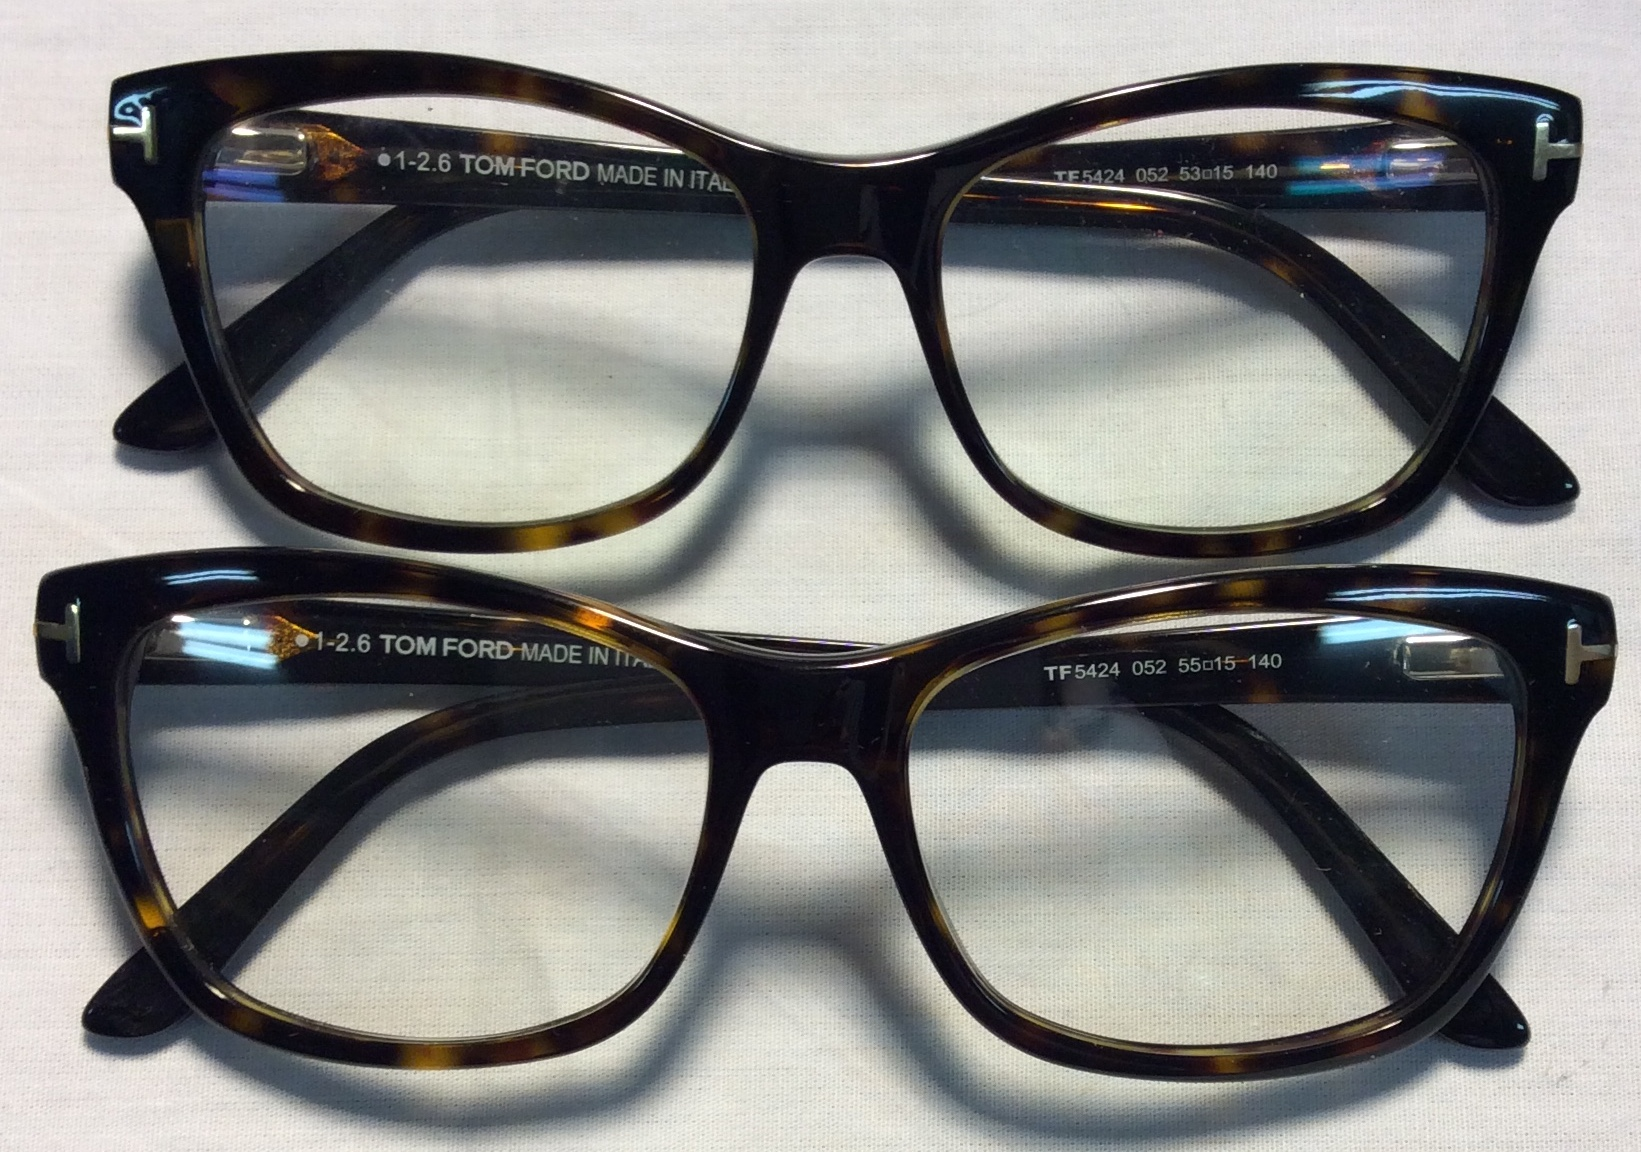 Tom Ford Tortoise shell frames